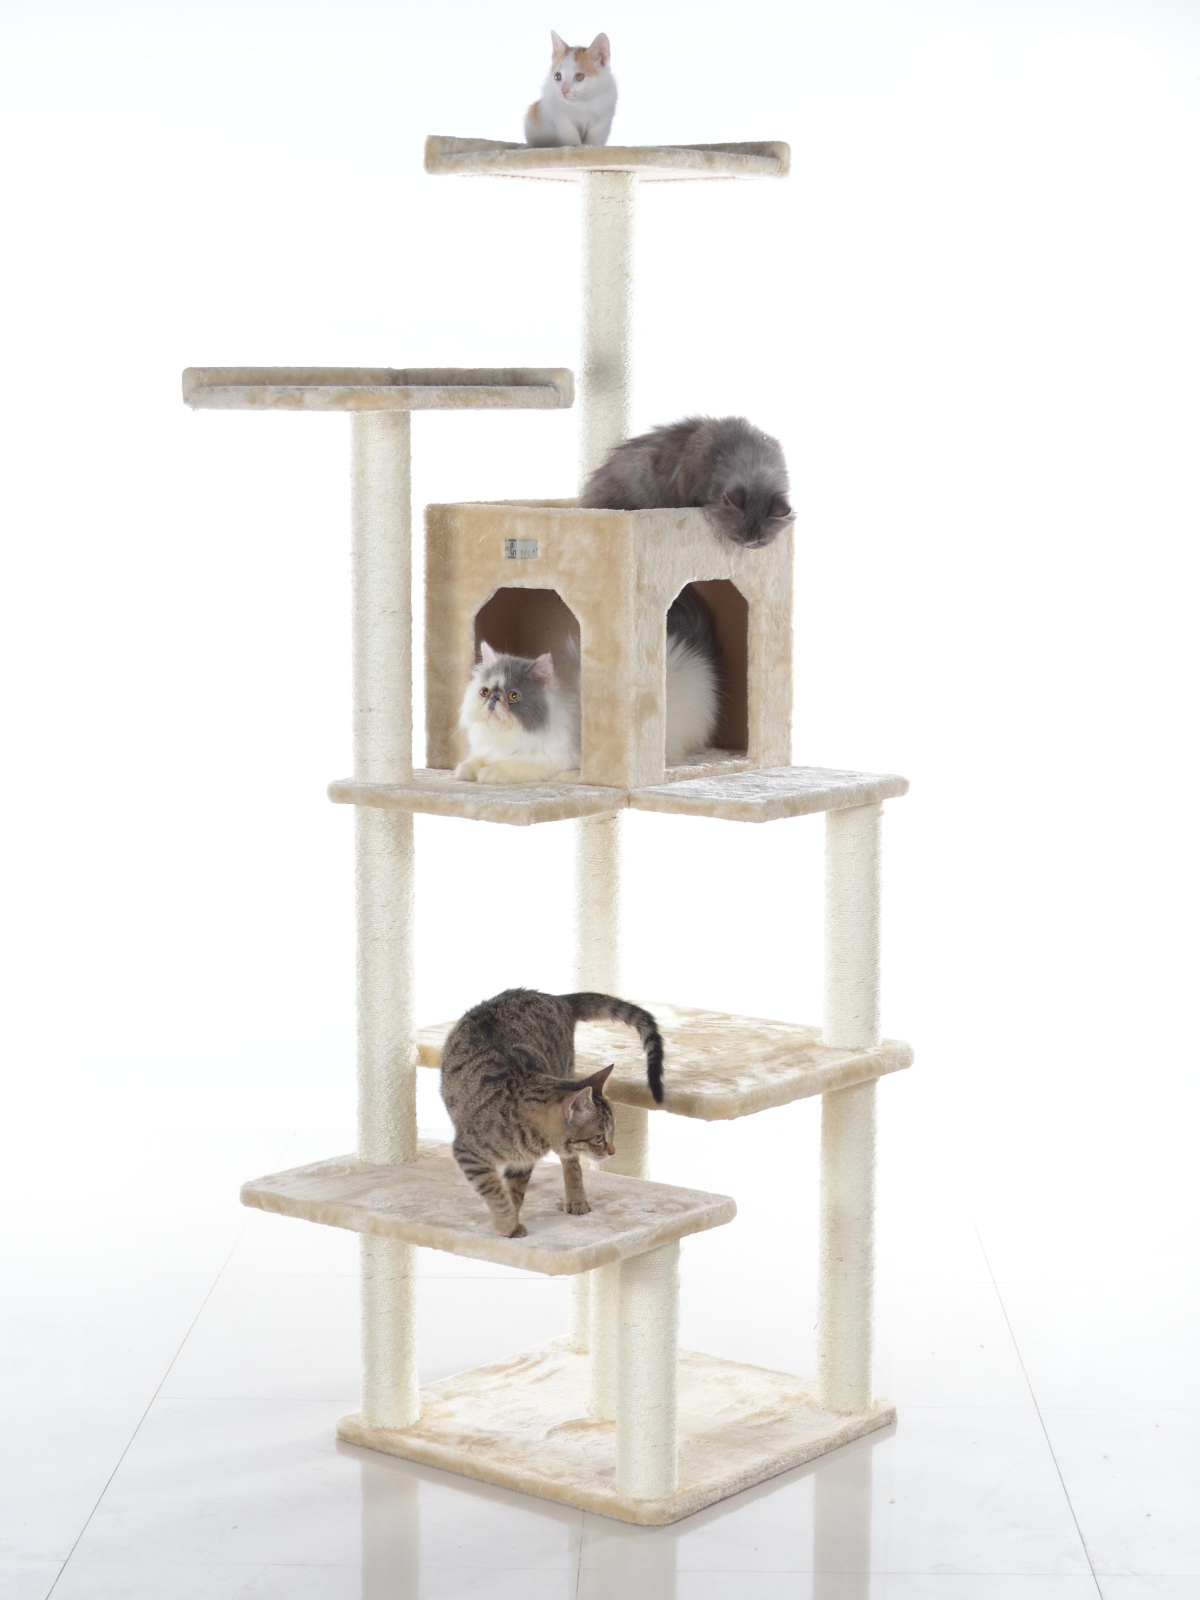 Cat Furniture For Sale Cat Furniture Discount Cat Furniture Tall Cat Condo Cat